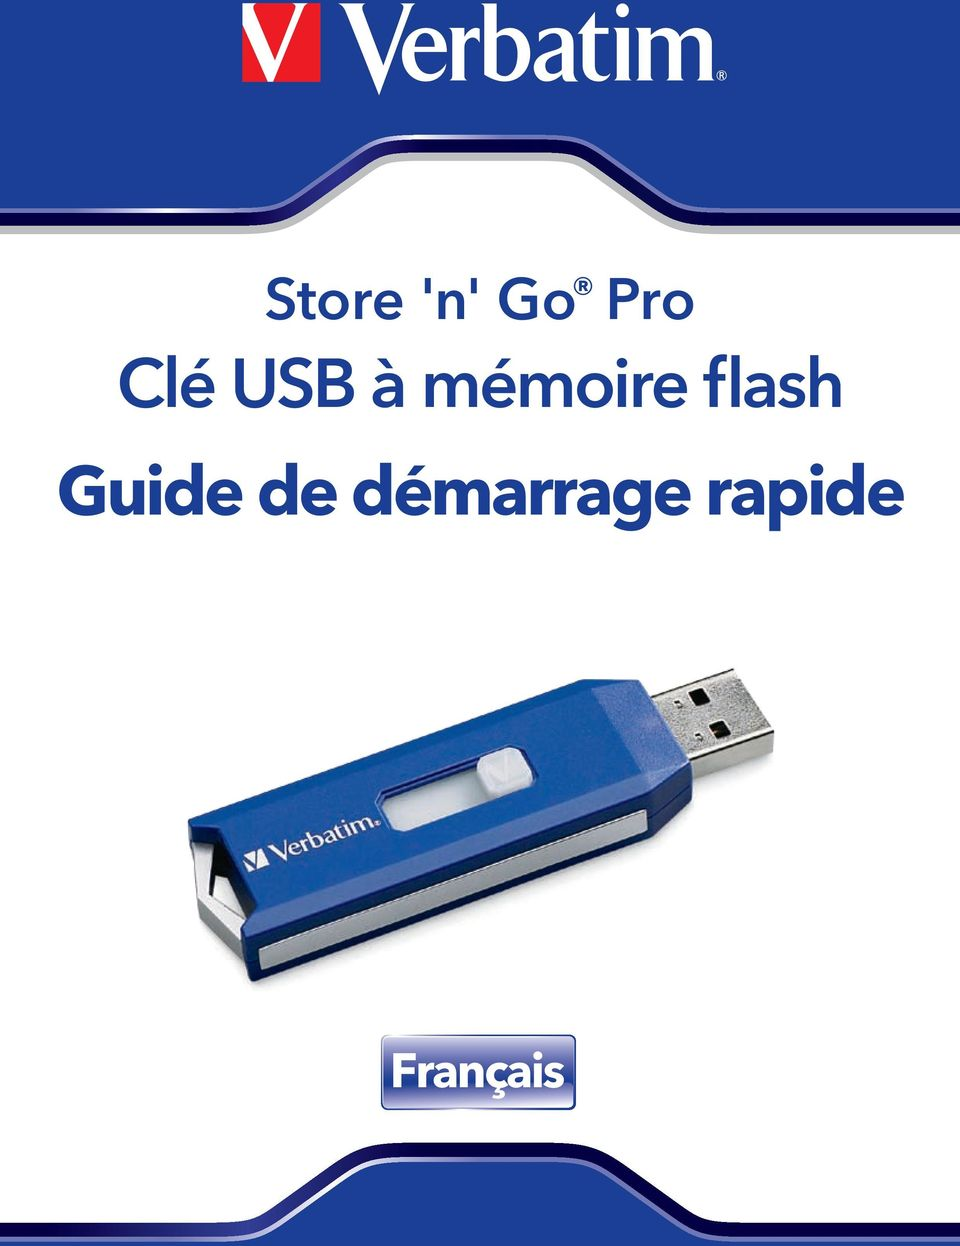 flash Guide de